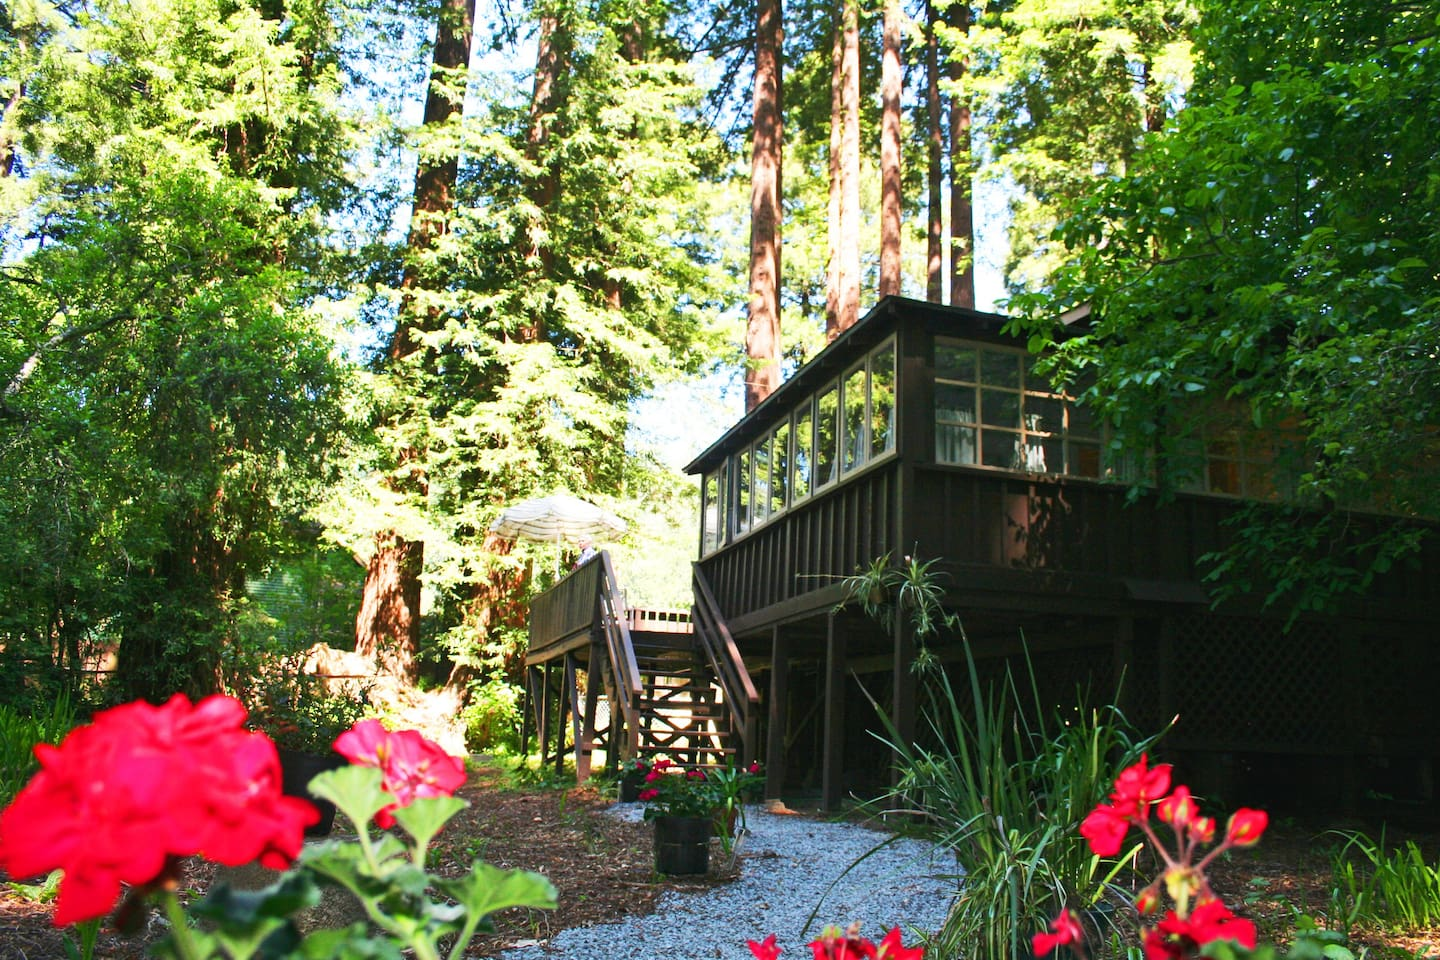 Welcome to the sweetest cabin at the River! 6 Min walk to River path!